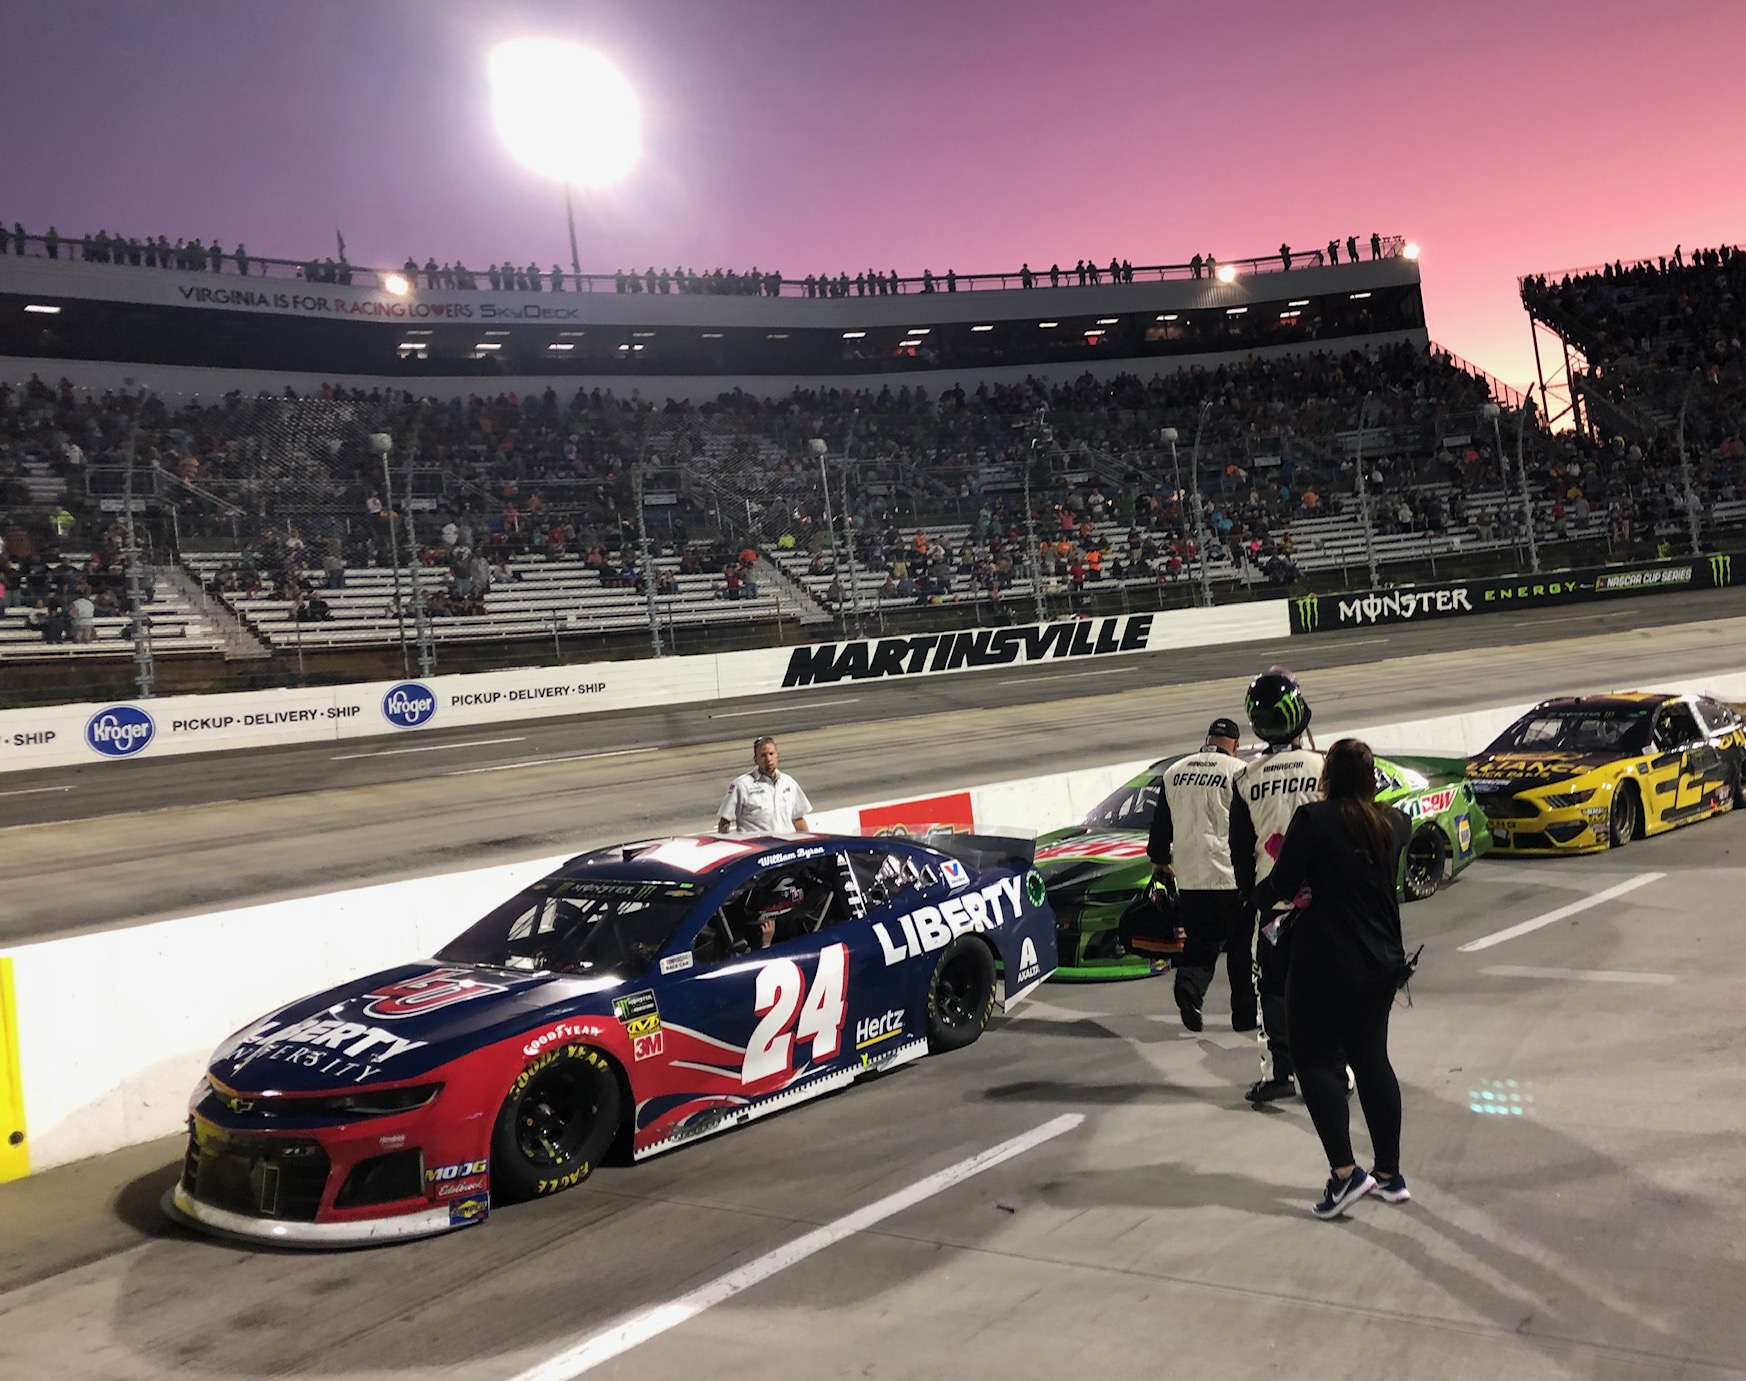 Rick Hendrick & Jeff Gordon Impressed by William Byron